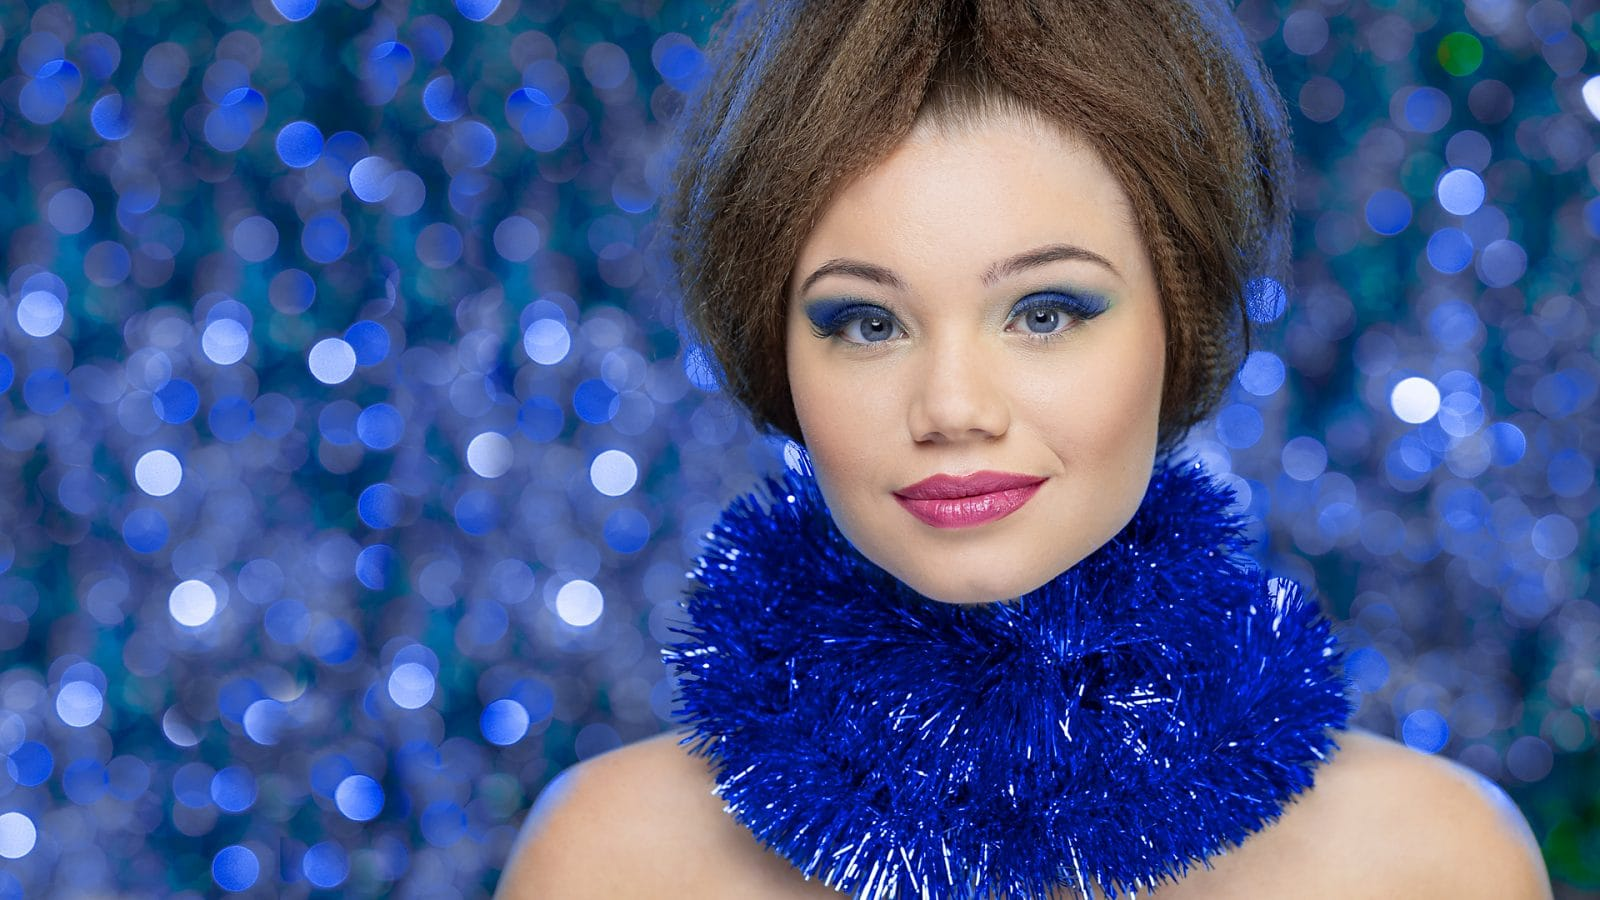 Model in front of blue bokeh background with garland around neck